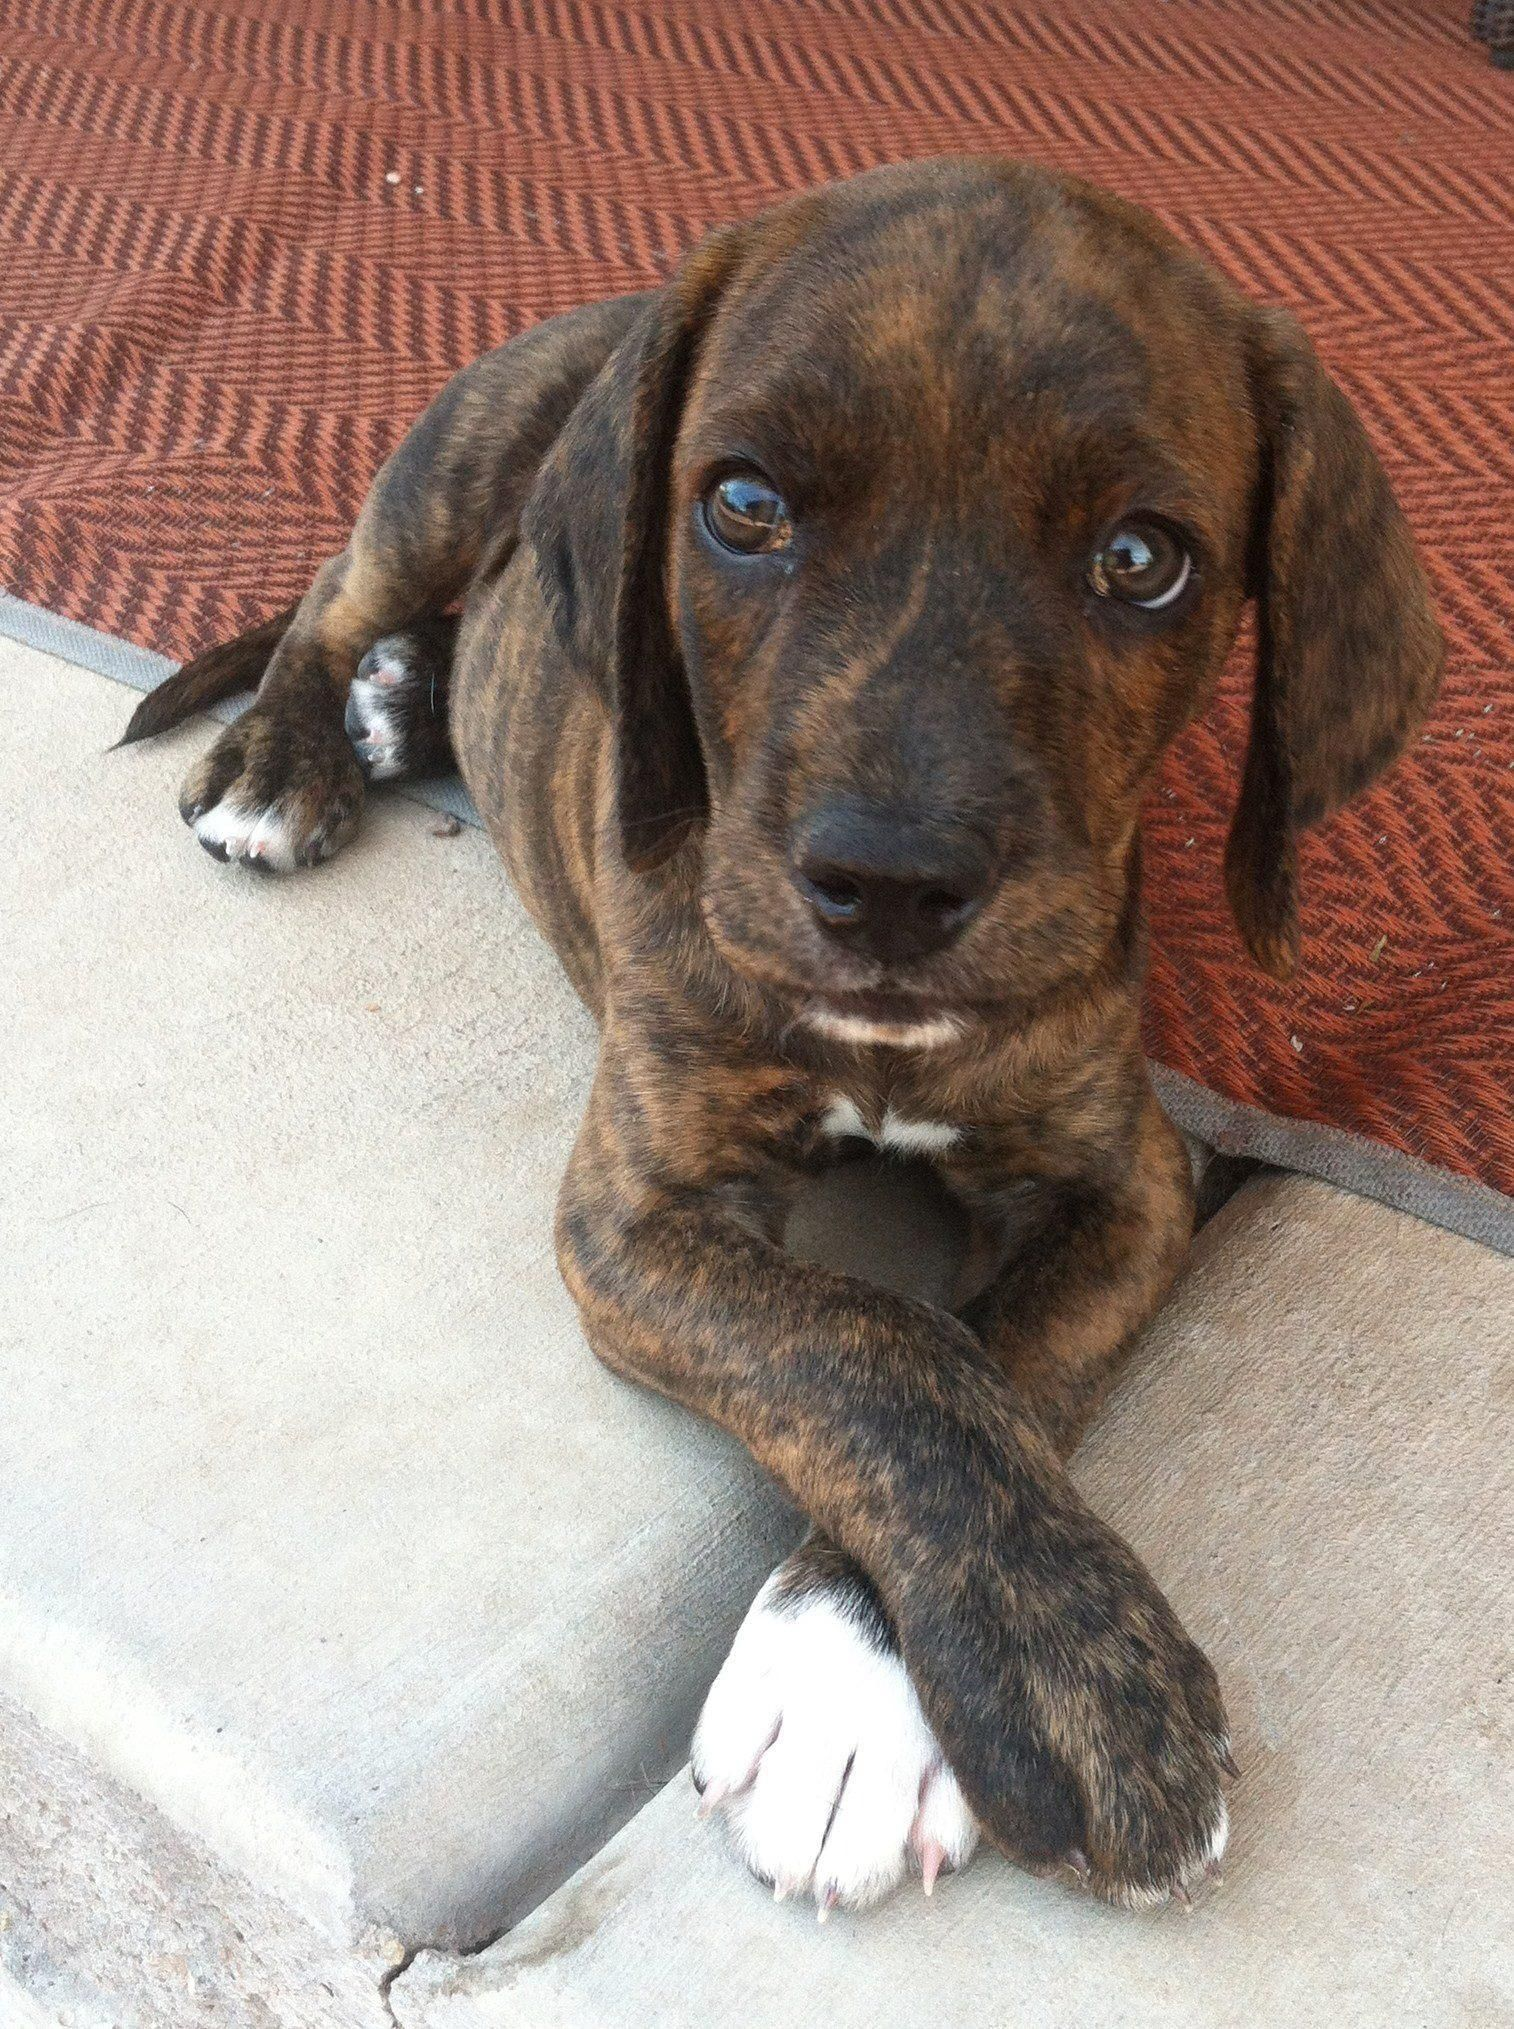 Baby Plott Hound. Hank does this with his paws all the time. #plotthound Baby Plott Hound. Hank does this with his paws all the time. #plotthound